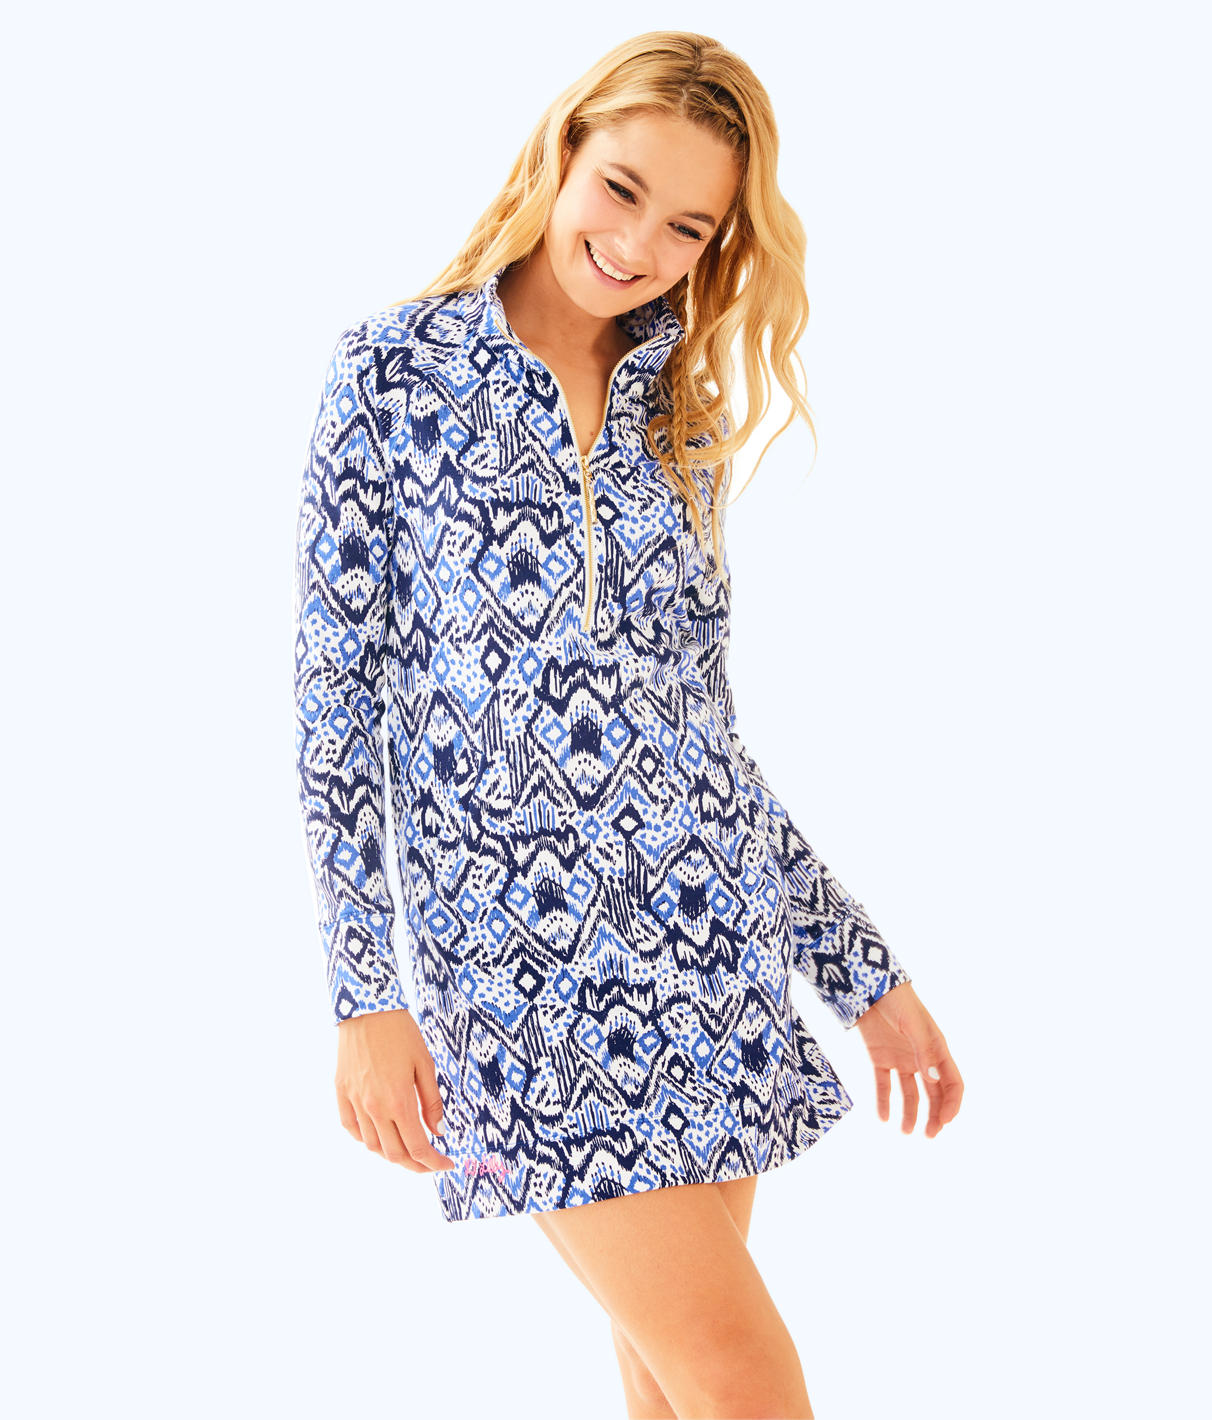 Lilly Pulitzer UPF 50+ Printed Popover Skipper Dress